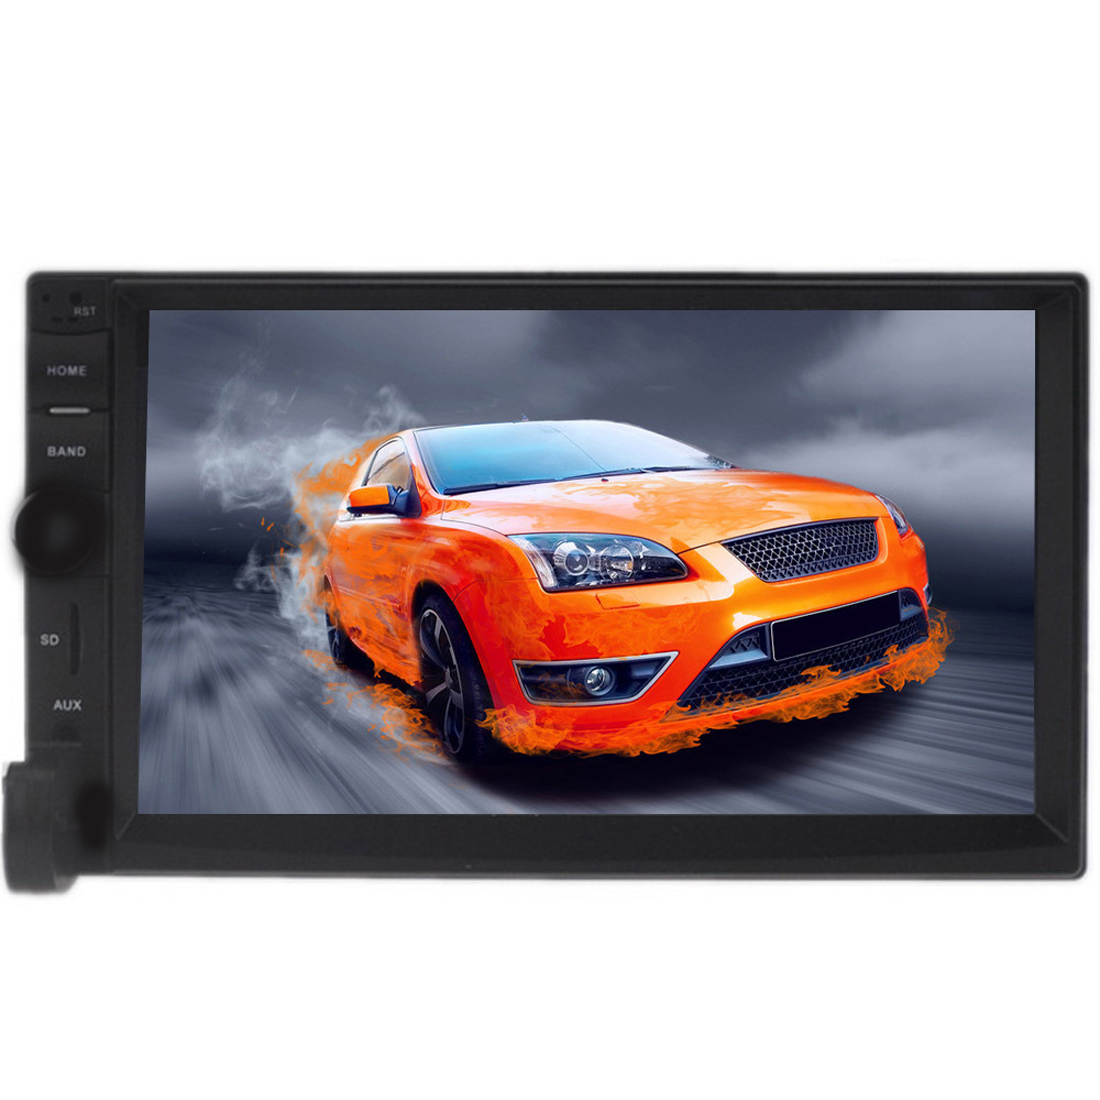 Dongzhen 7 inch Bluetooth Audio Touch Screen Car Radio Car Audio Stereo MP3 MP5 Player USB 7018B 7 Support for SD/MMC control